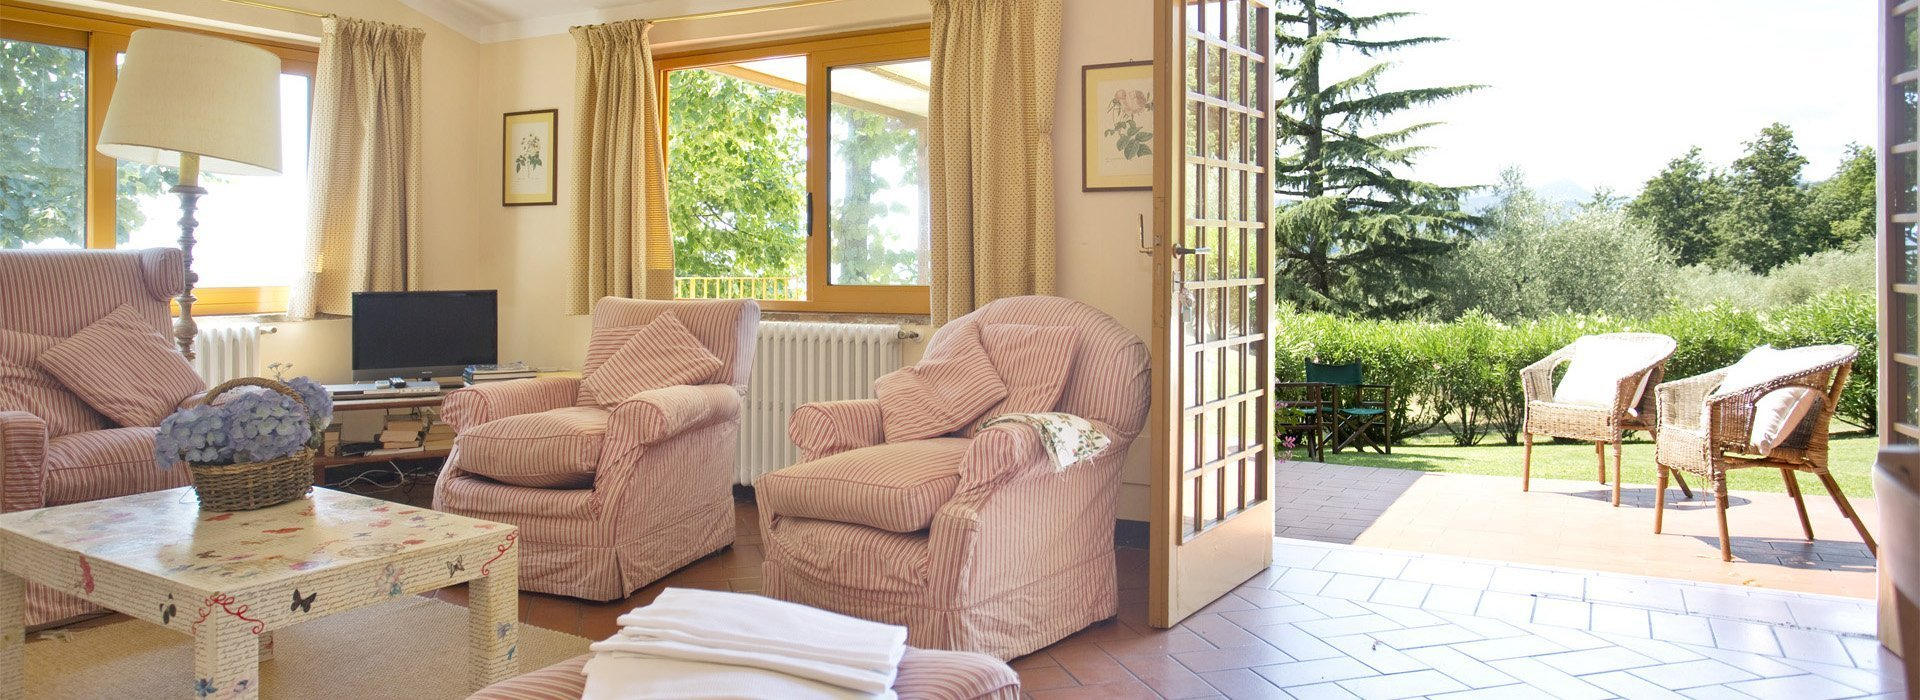 Holiday Villas for rent in Lucca